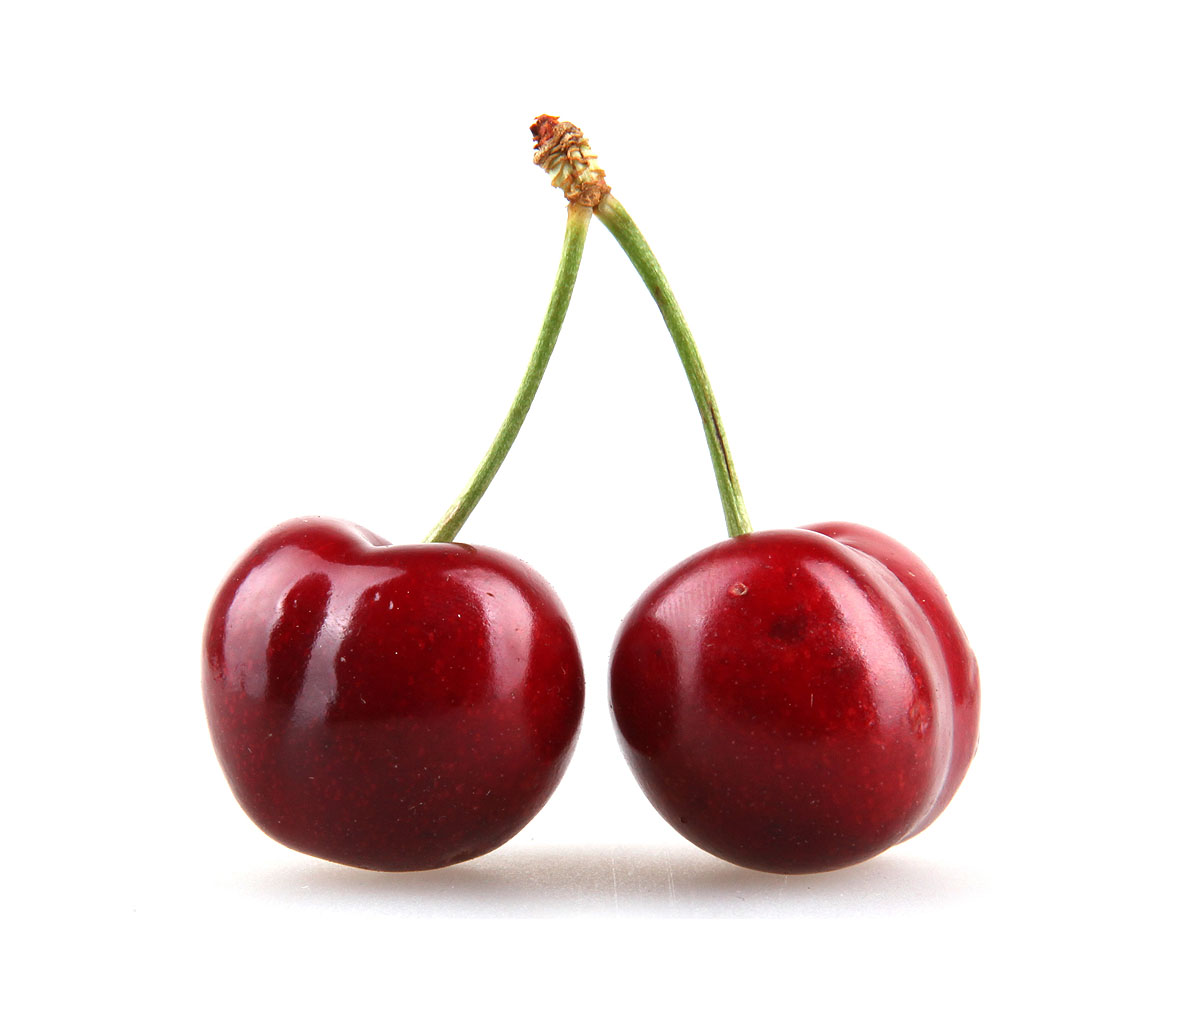 Here's How Tart Cherry Powder Can Reduce Soreness from Running